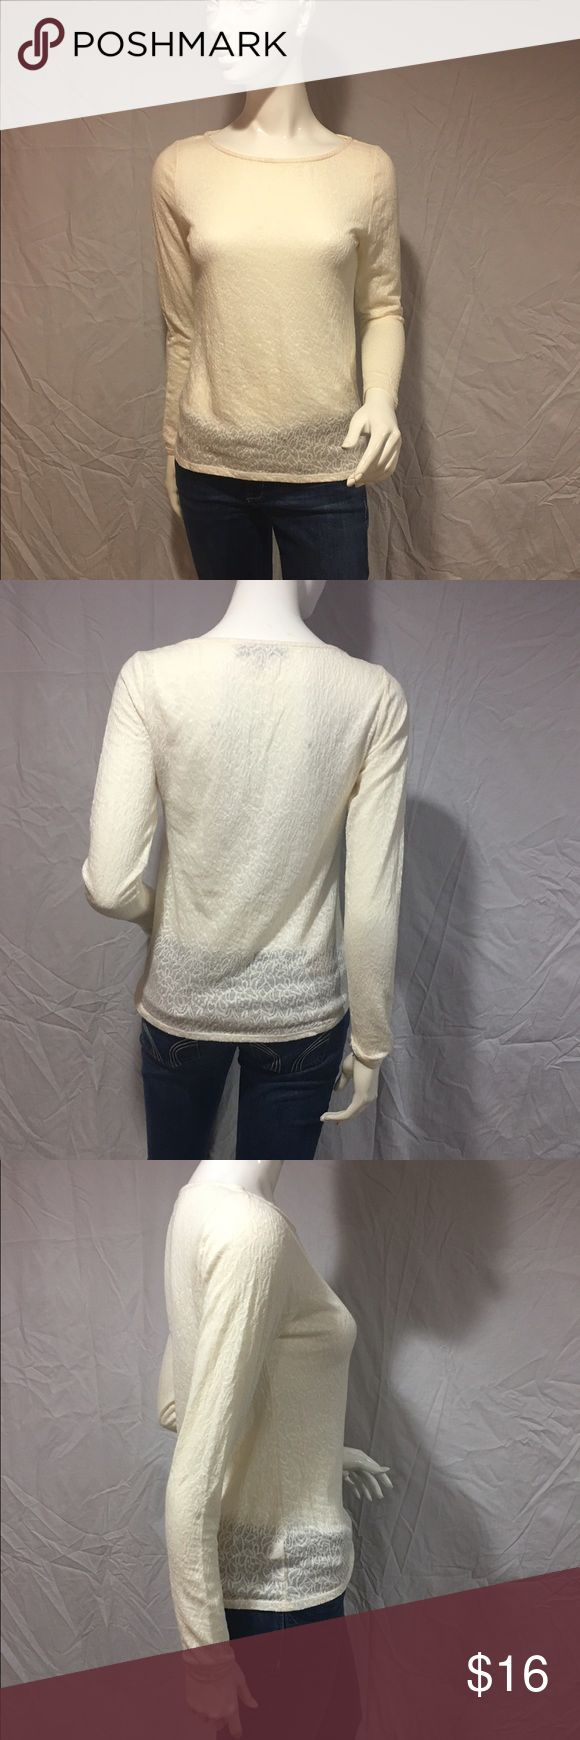 Long sleeve lace top White long sleeve top. Material is a thick lace. See through, so would need a shirt or bandeau underneath. In great condition. Cute for any occasion. Feel free to make me a reasonable offer 💕 LOFT Tops Tees - Long Sleeve